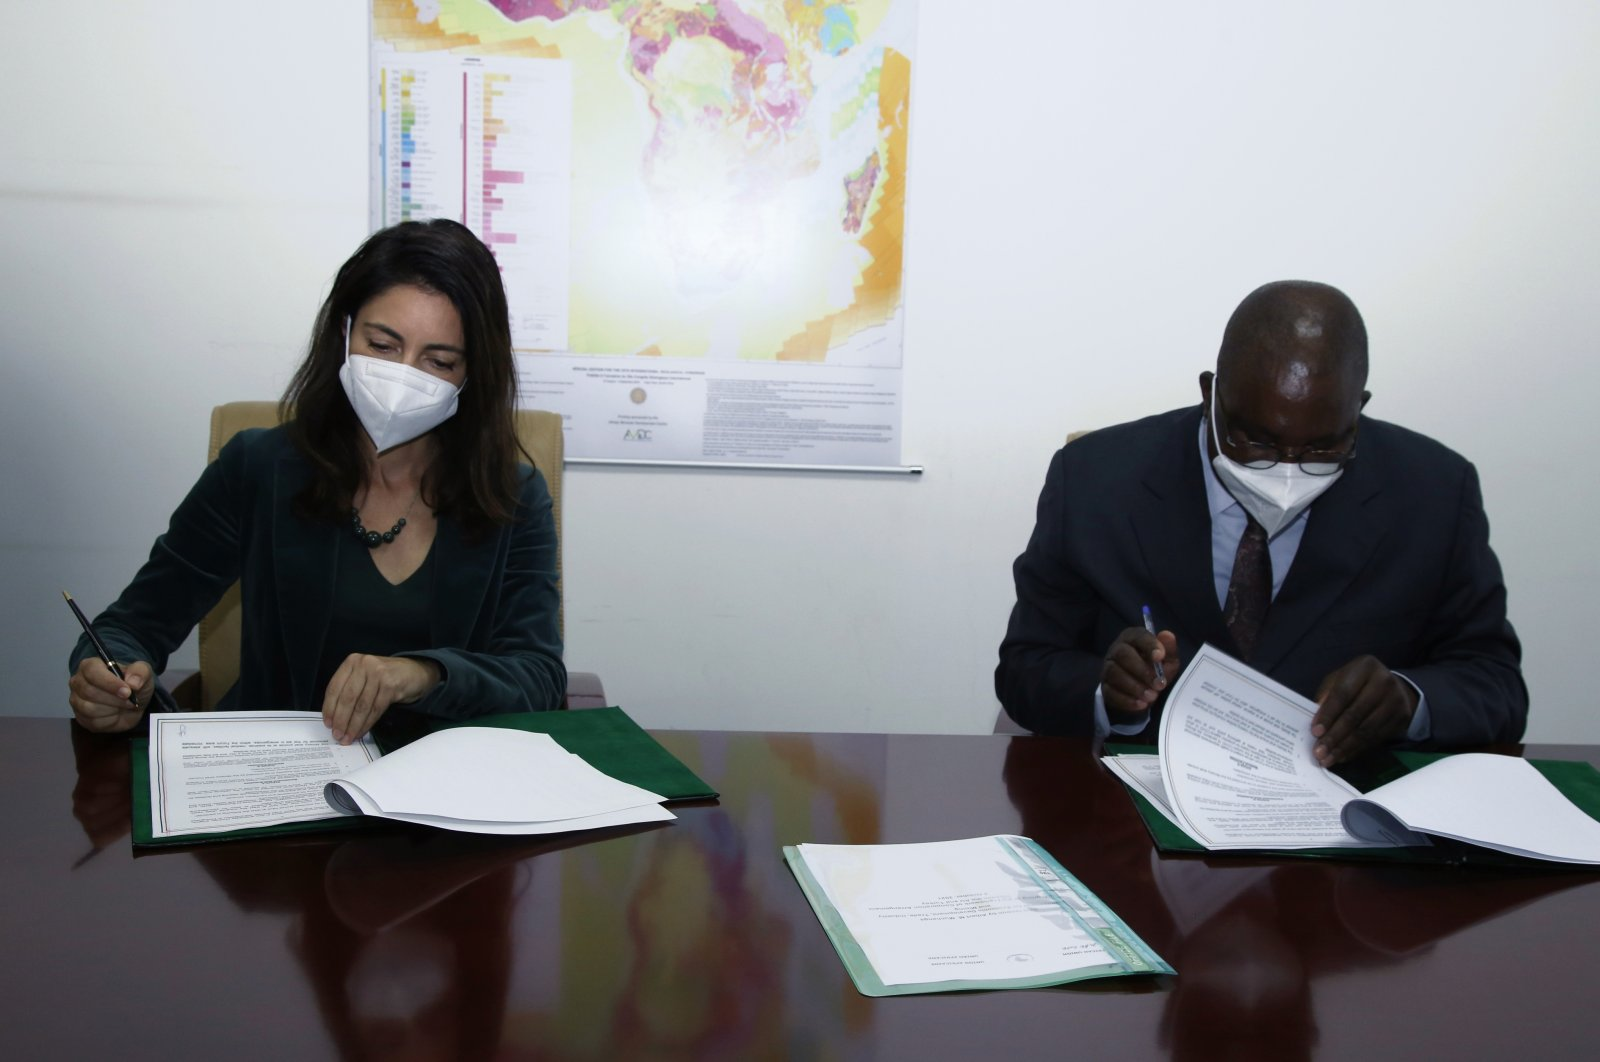 Ankara's Ambassador to Ethiopia and the African Union Yaprak Alp (L) and the African Union's Commissioner for Economic Development Trade, Industry and Mining Albert Muchanga sign agreements in Addis Ababa, Ethiopia, Oct. 5, 2021 (AA Photo)